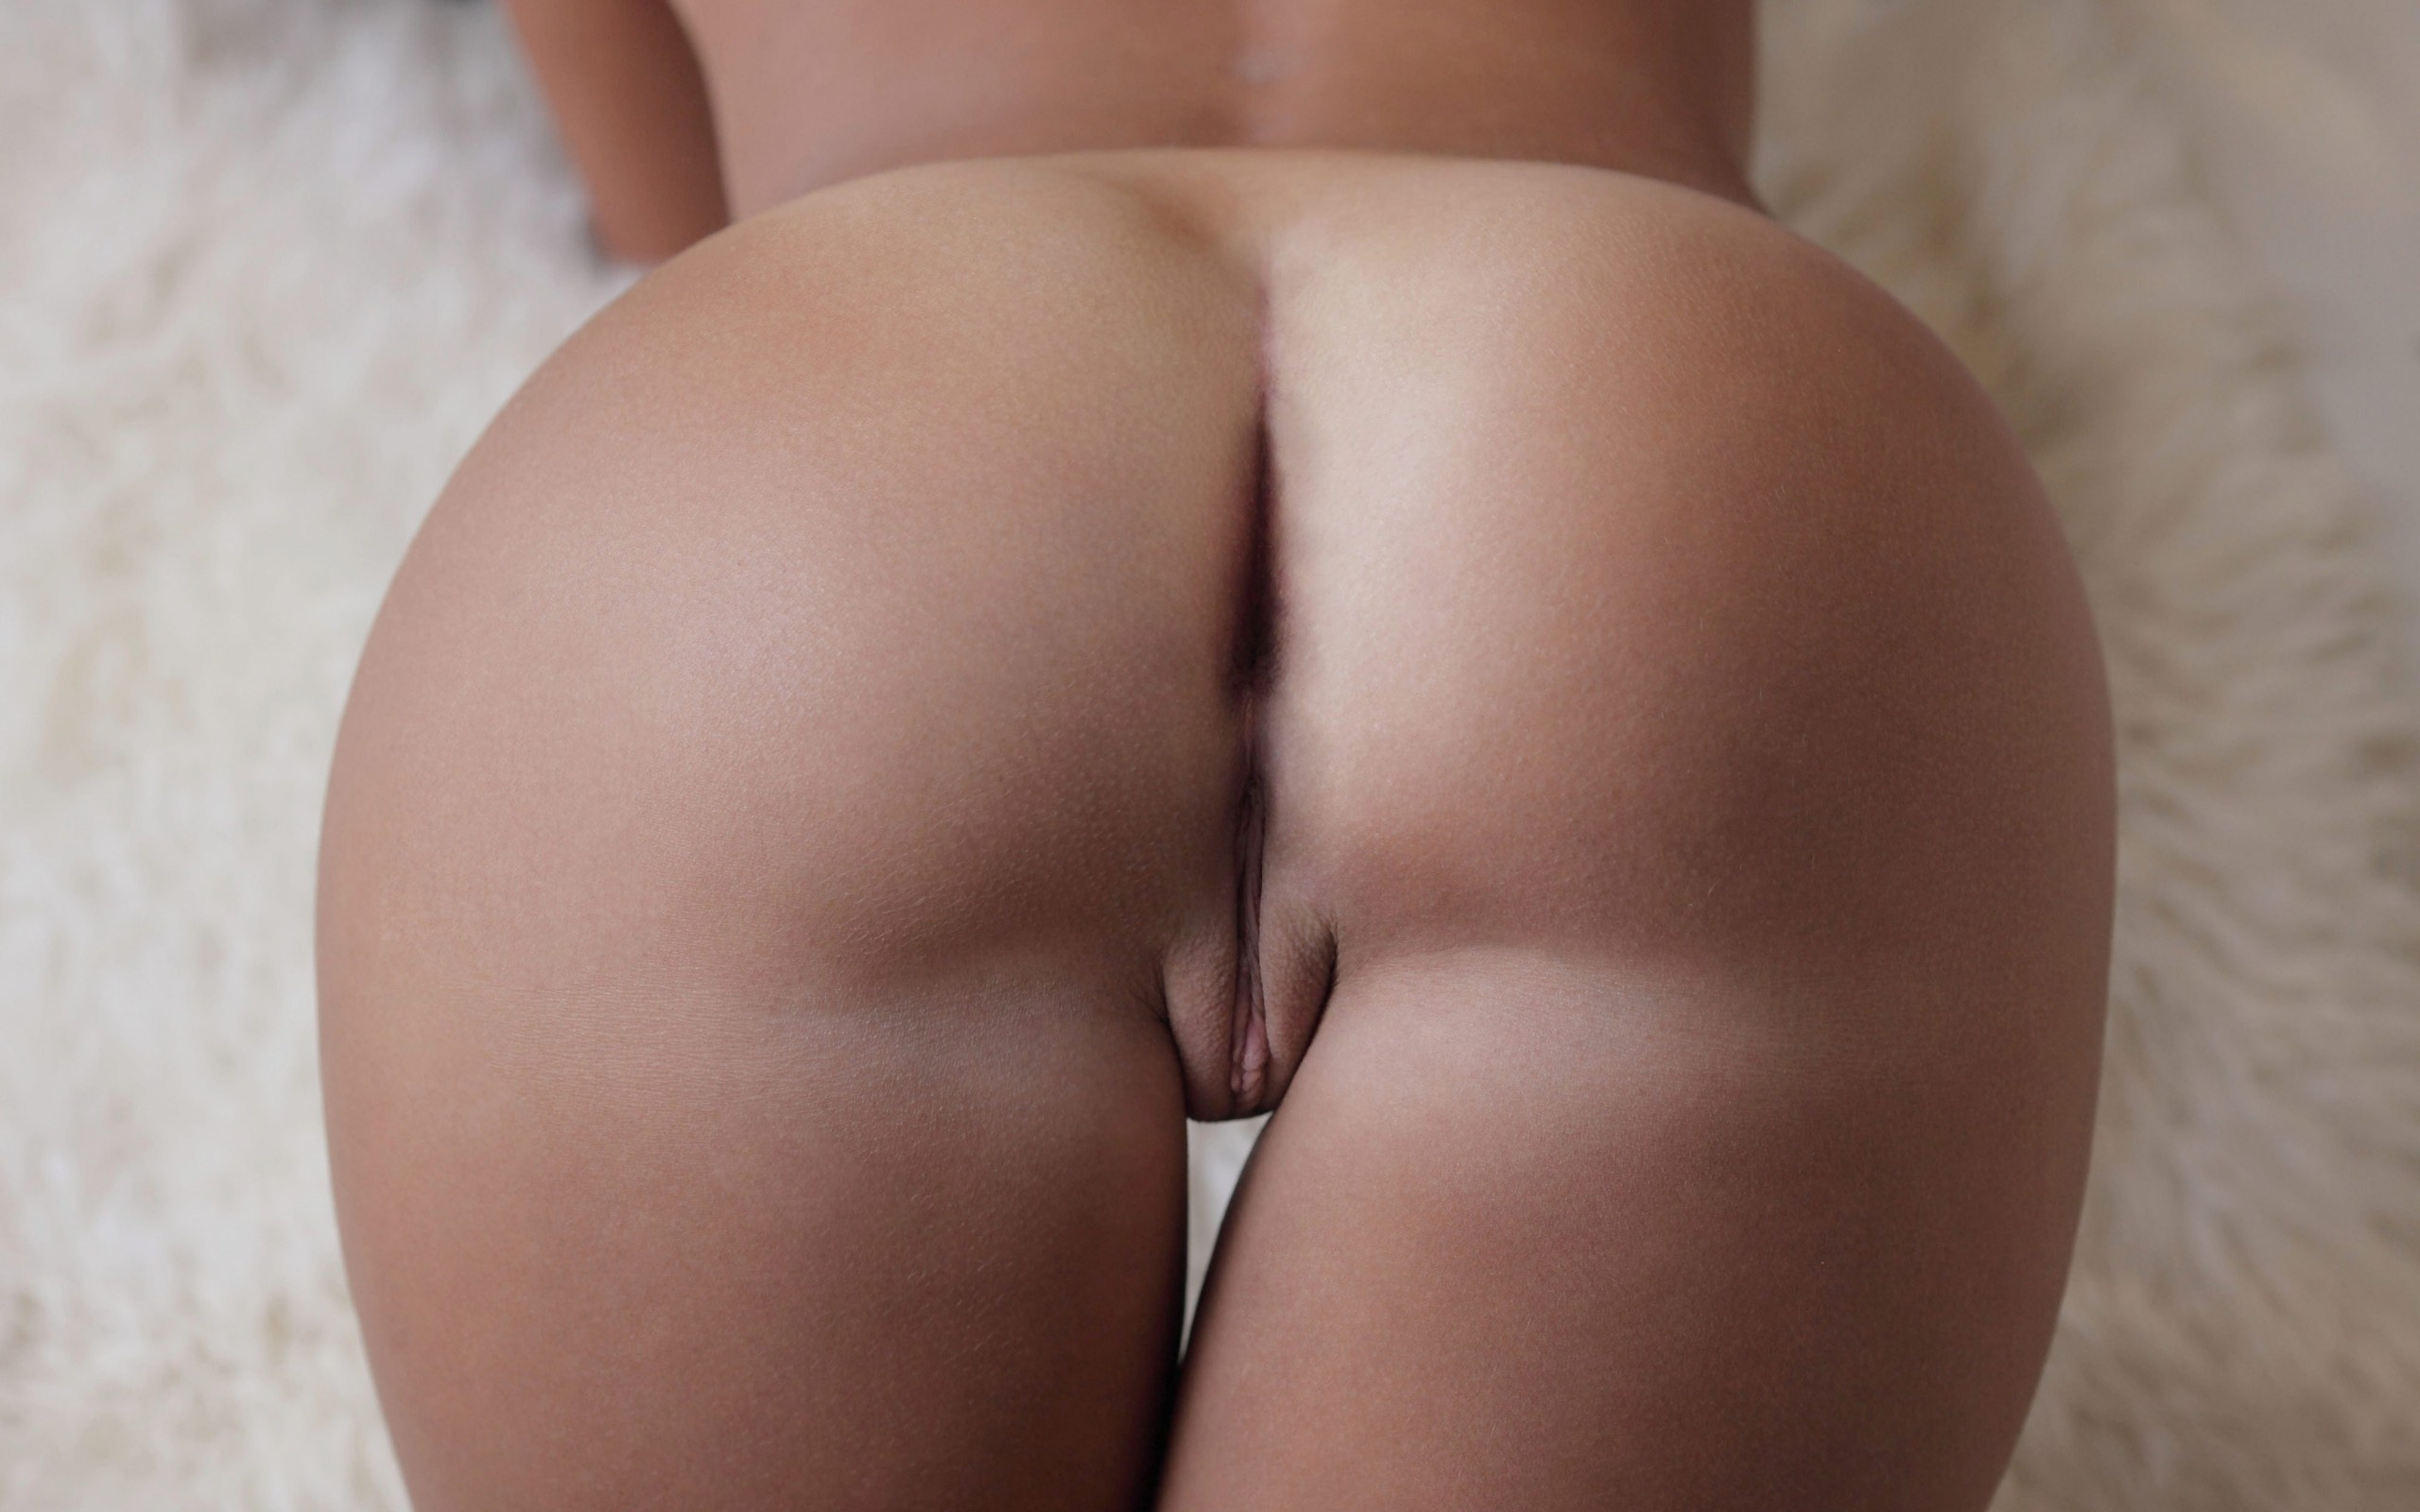 fuck women naked photos tumblr